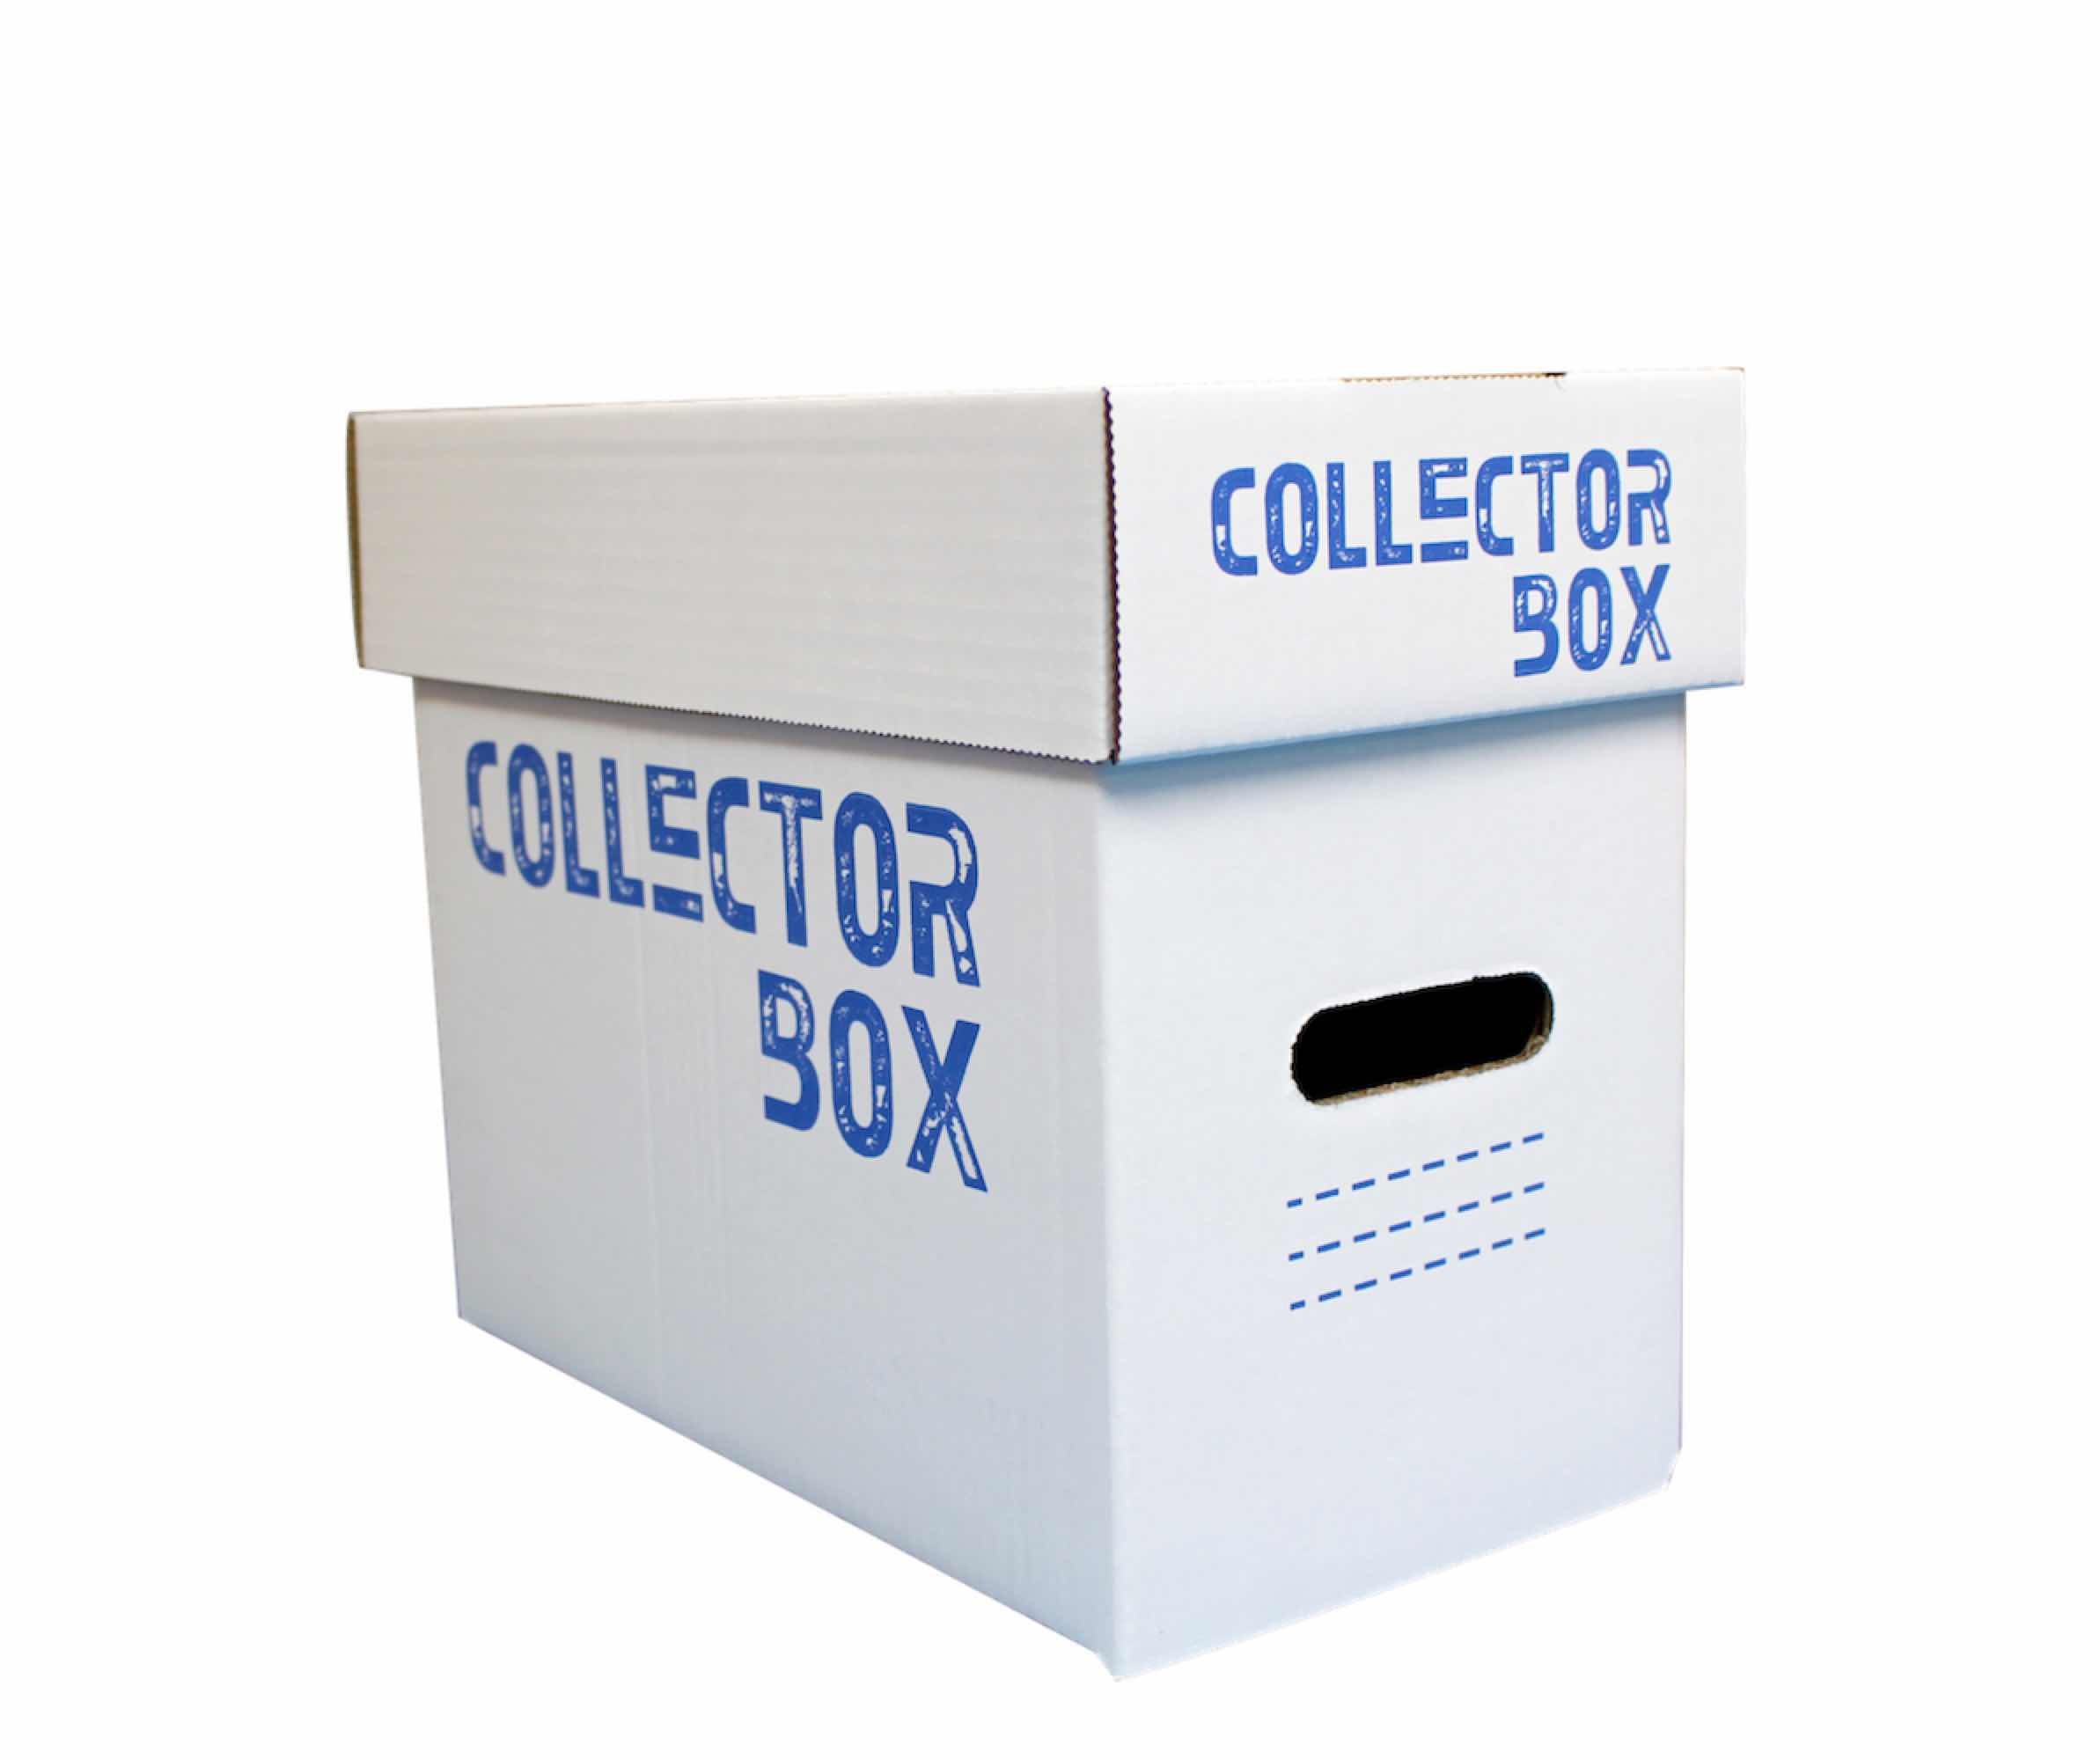 COLLECTOR BOX CAJA INDIVIDUAL CARTON 30 X 20 X 30 CM